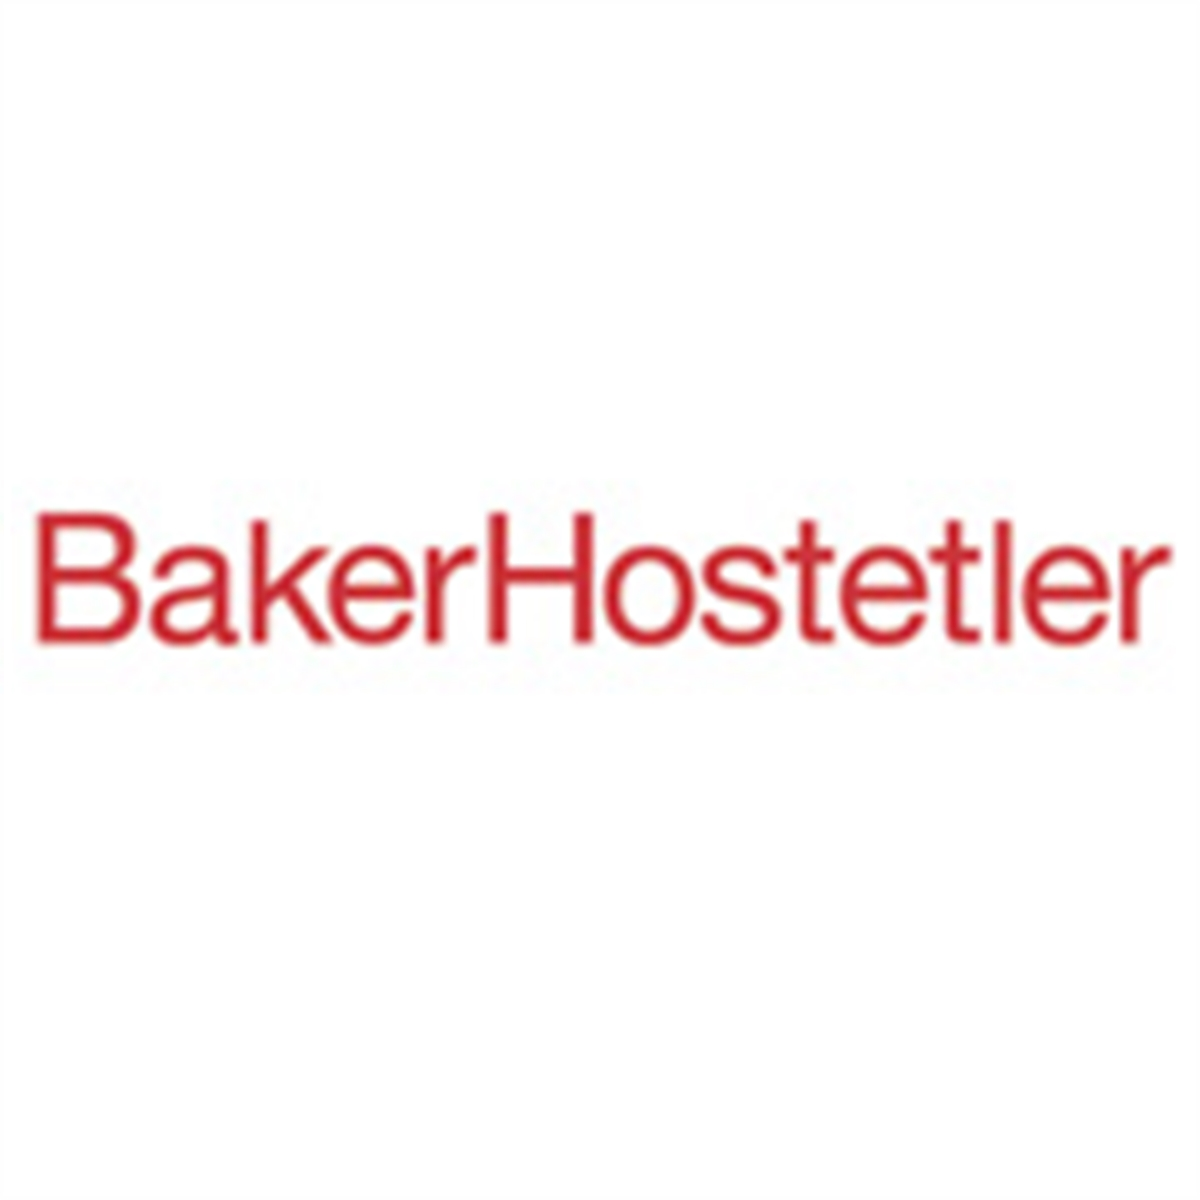 FCC Wades Back Into Data Privacy and Security for ISPs With Revised Privacy Proposal | BakerHostetler - JDSupra